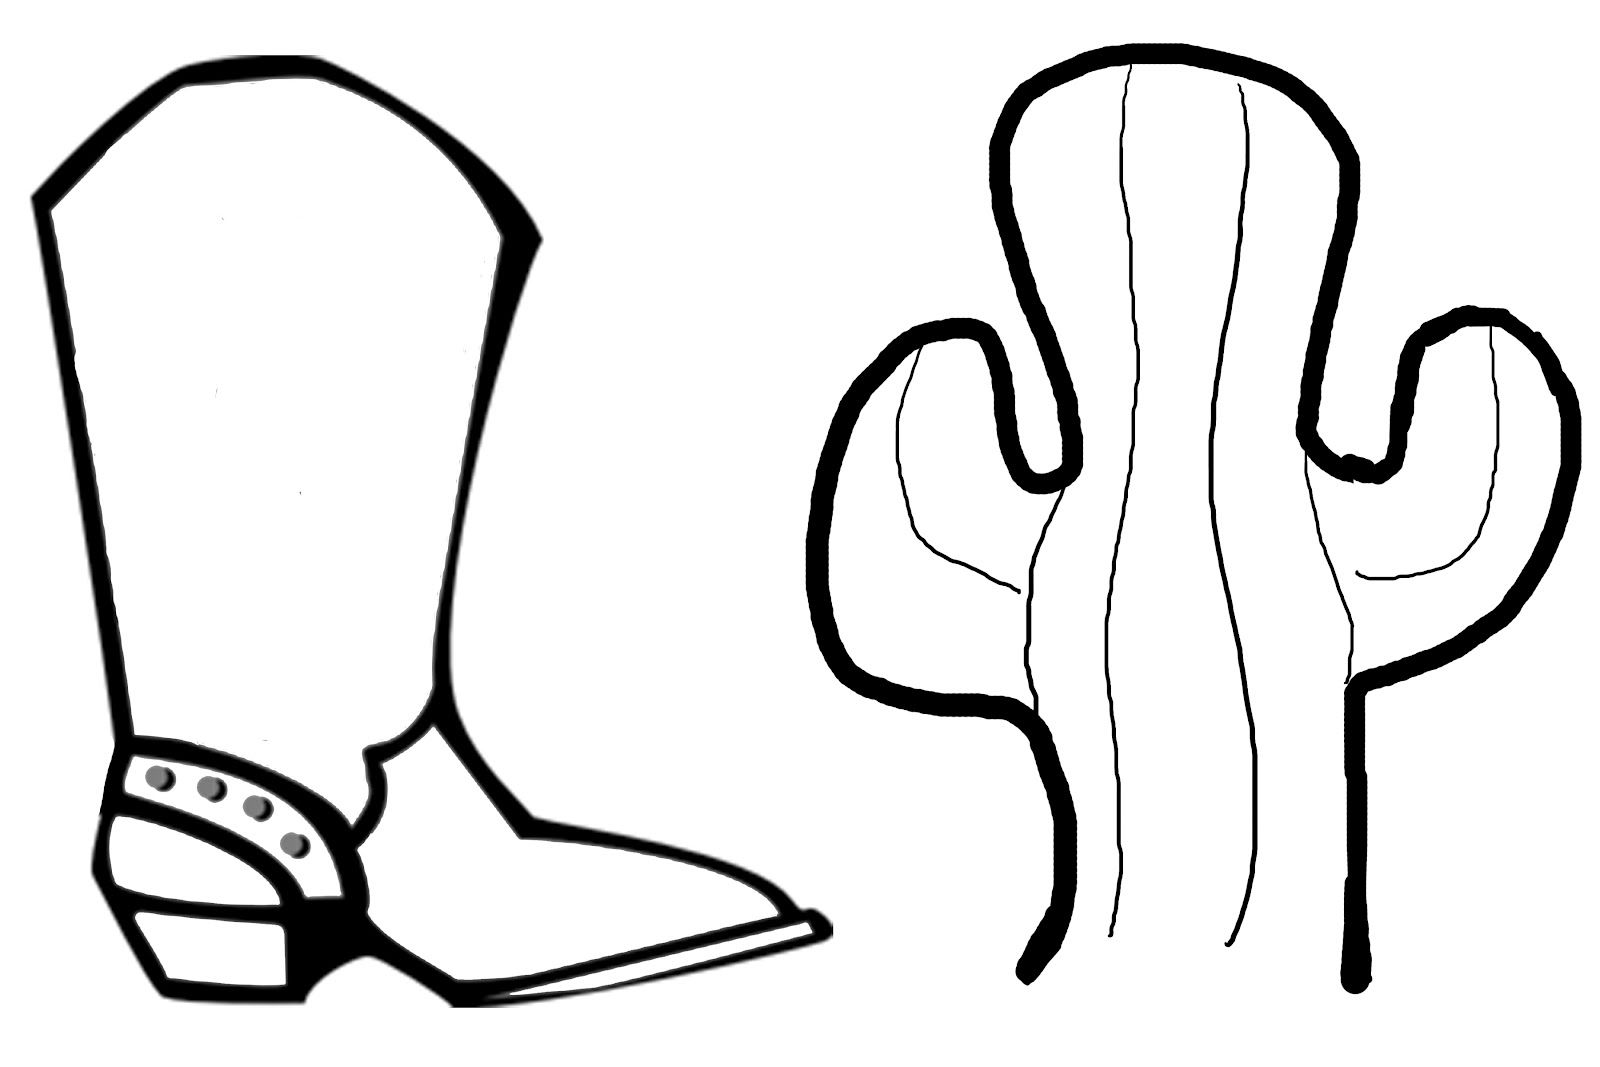 Printable coloring pictures of cowboy boots - Simple Western Coloring Pages Dust Off Any Old Rope You Might Have In The Shed